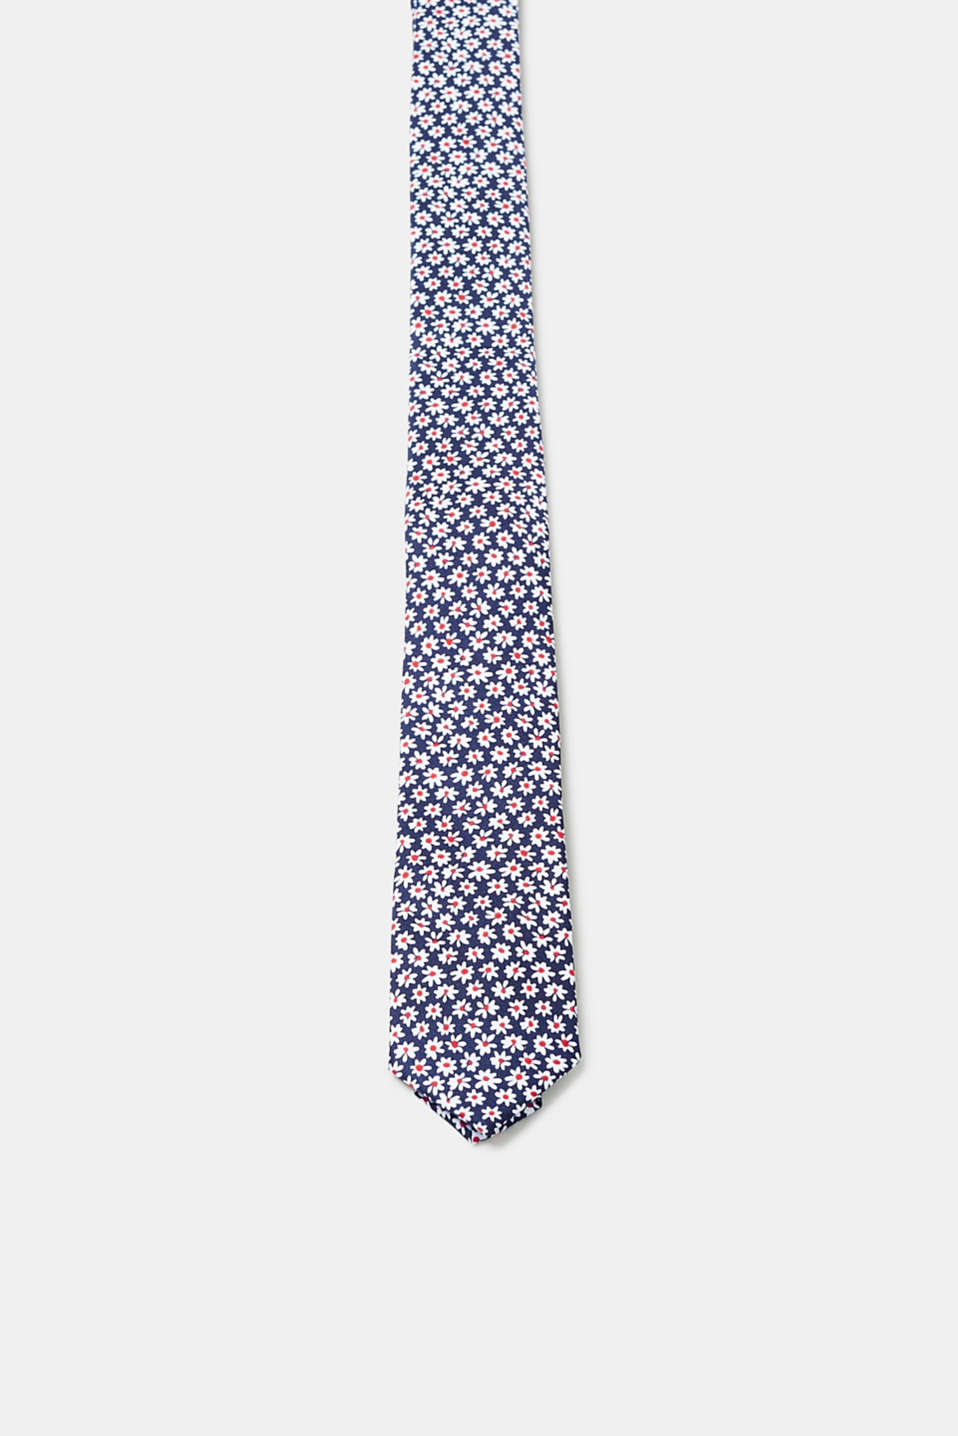 Esprit - Narrow tie with a floral pattern